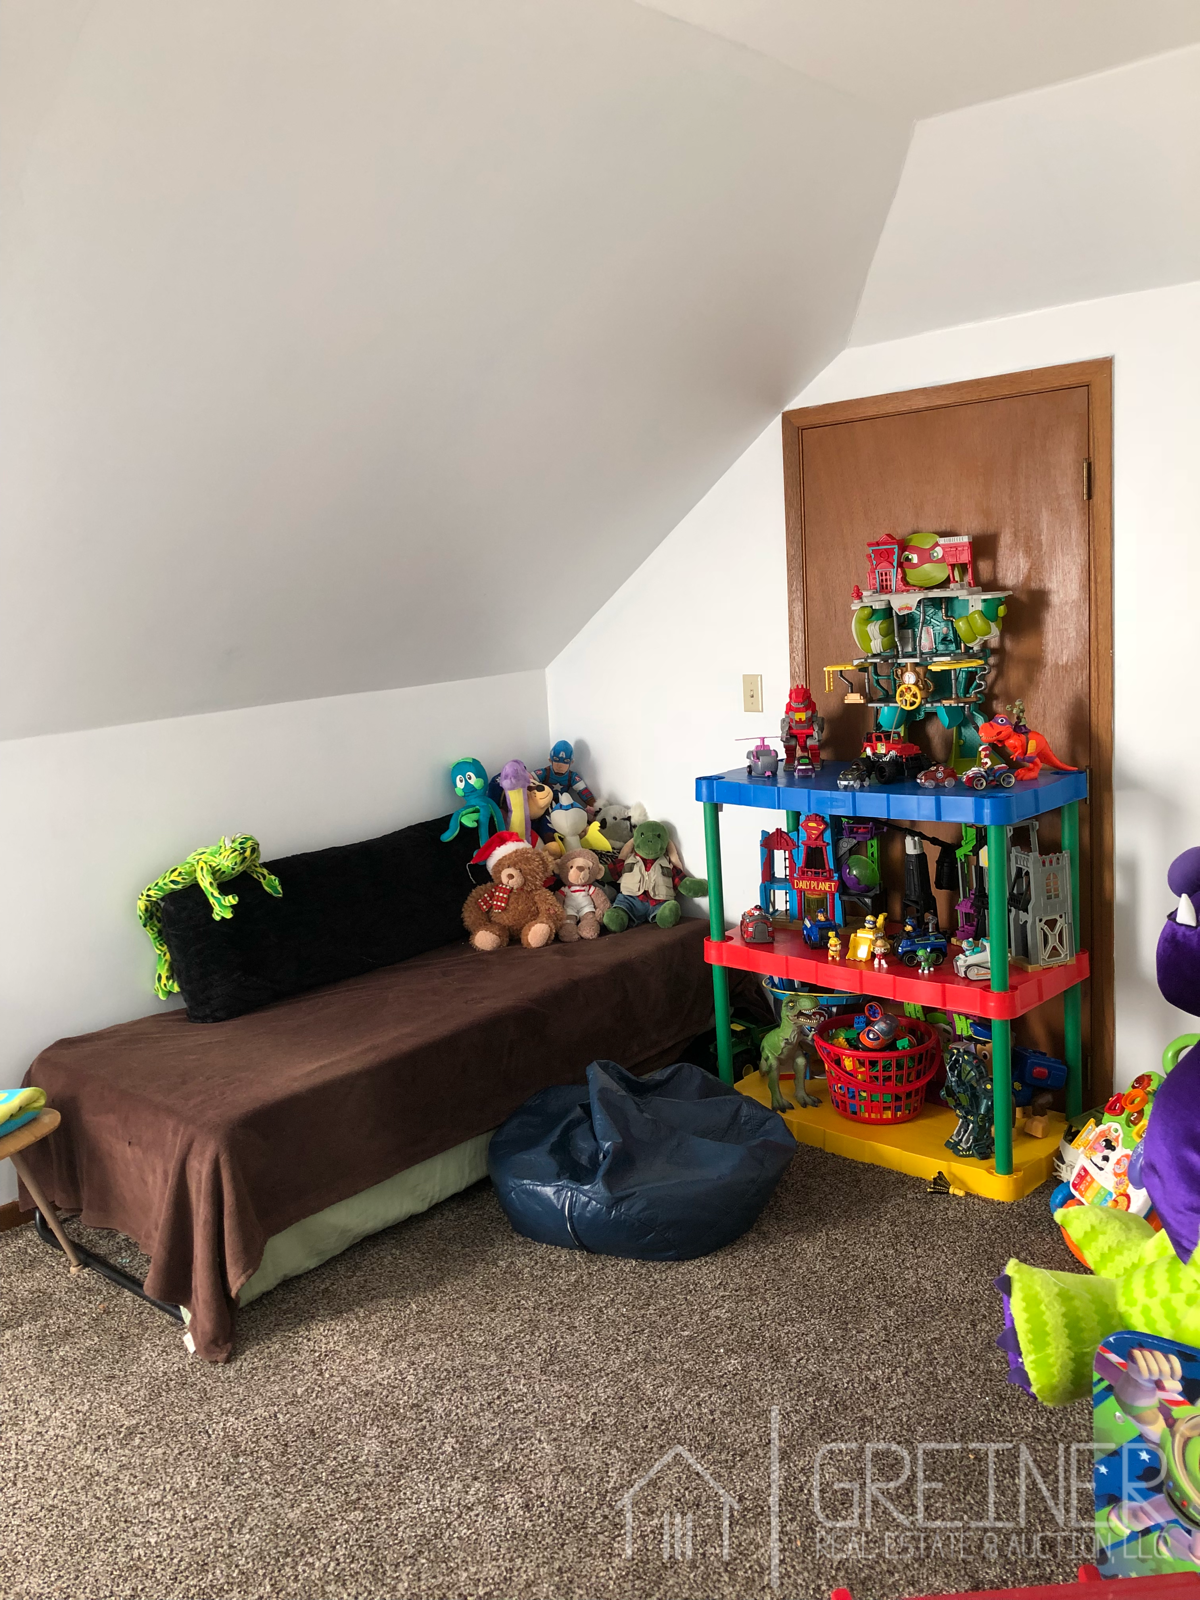 W17 - 209 Bedrooom Toy 1